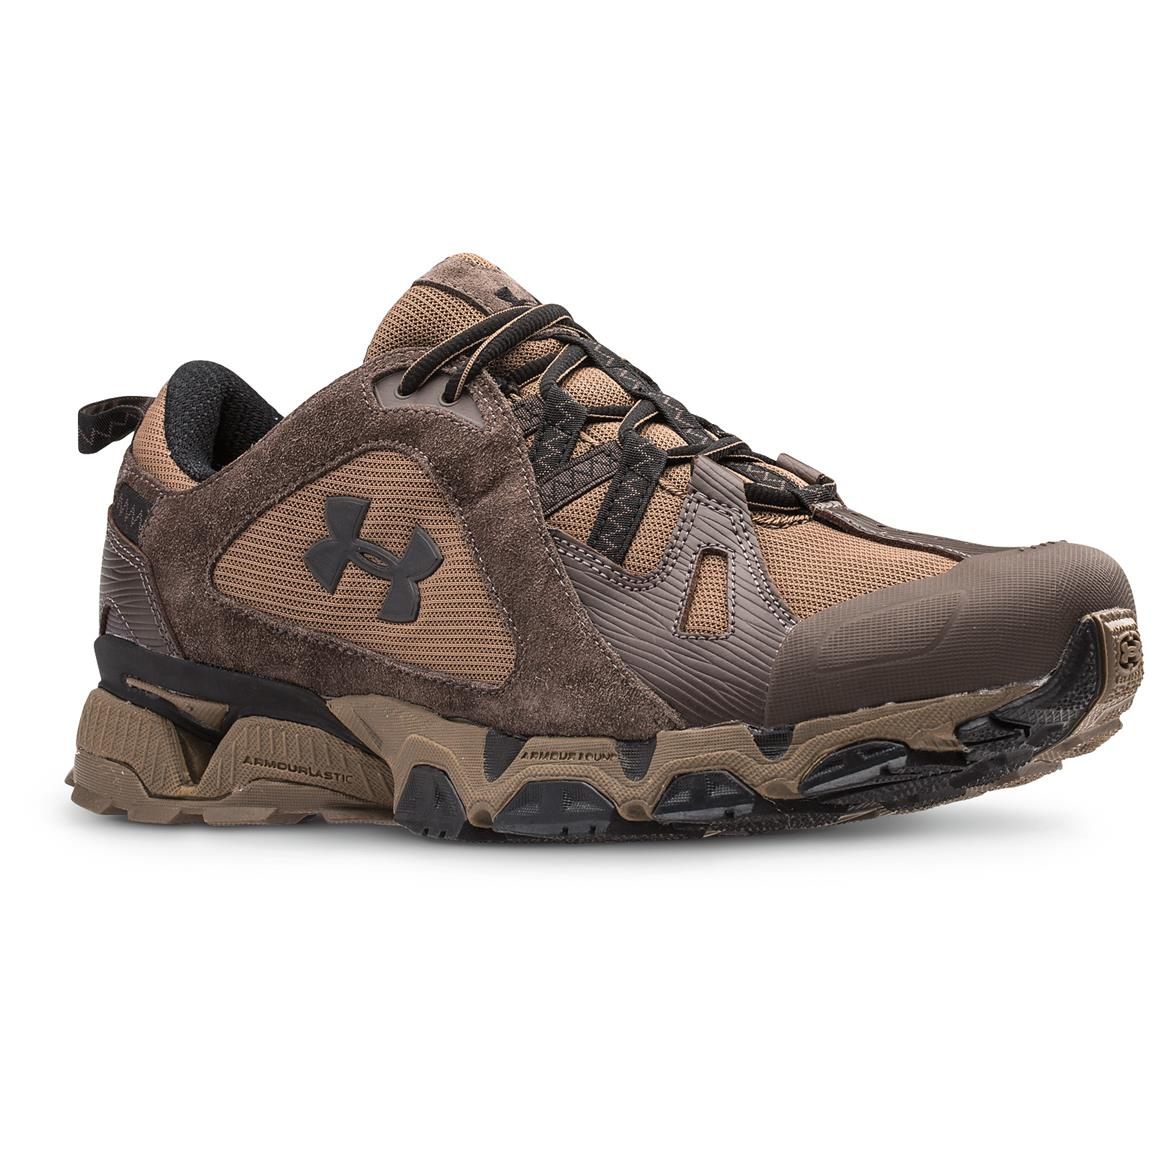 Under Armour Men's Chetco Trail Running Shoes, Maverick Brown